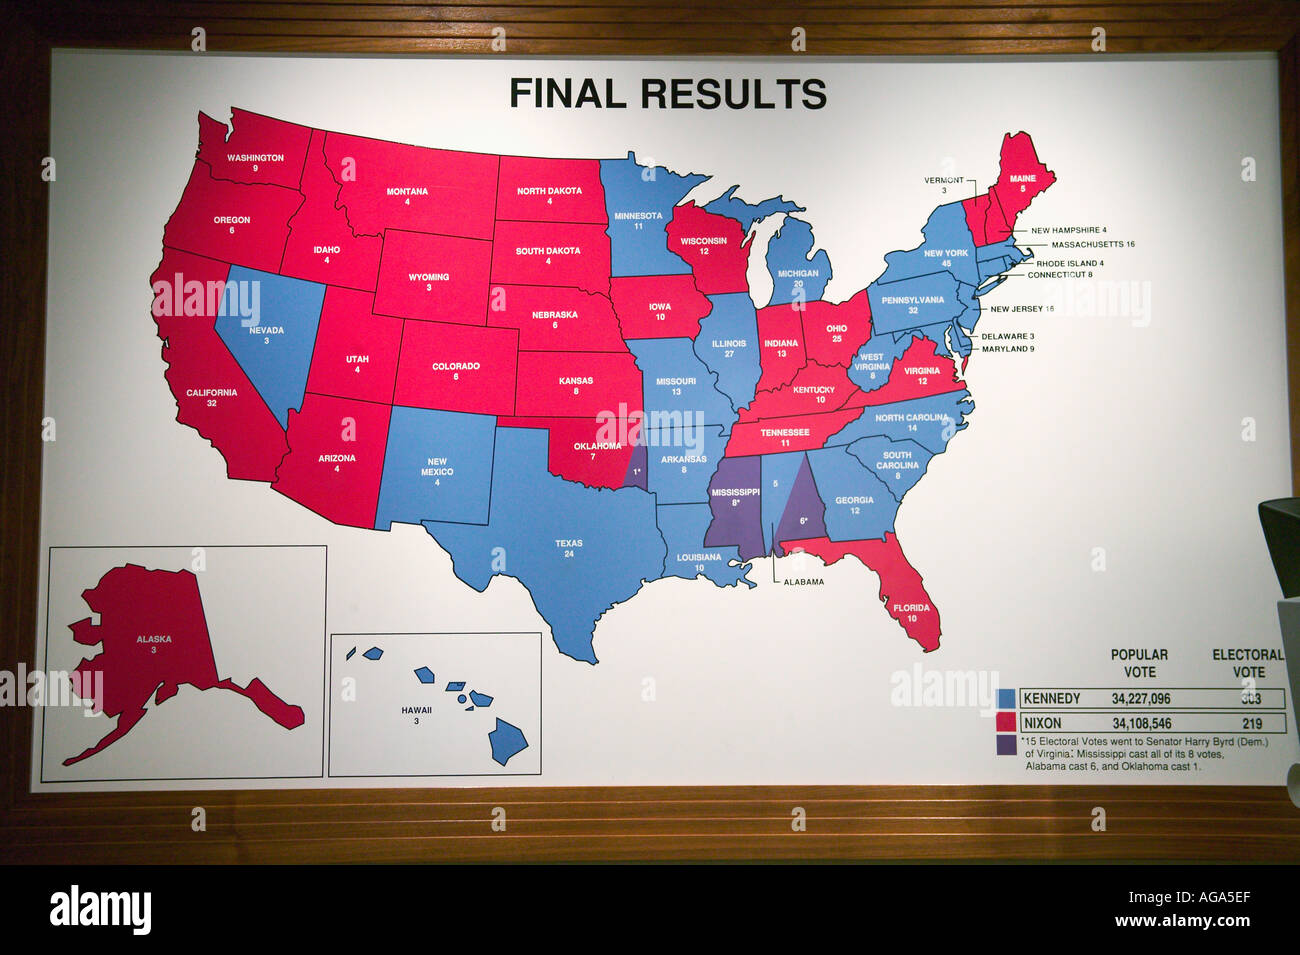 Stock Photo Usa Map Shows Presidential Election Voting Results In Campaign Trail Exhibits At John F Kennedy Library And Museum Boston Ma